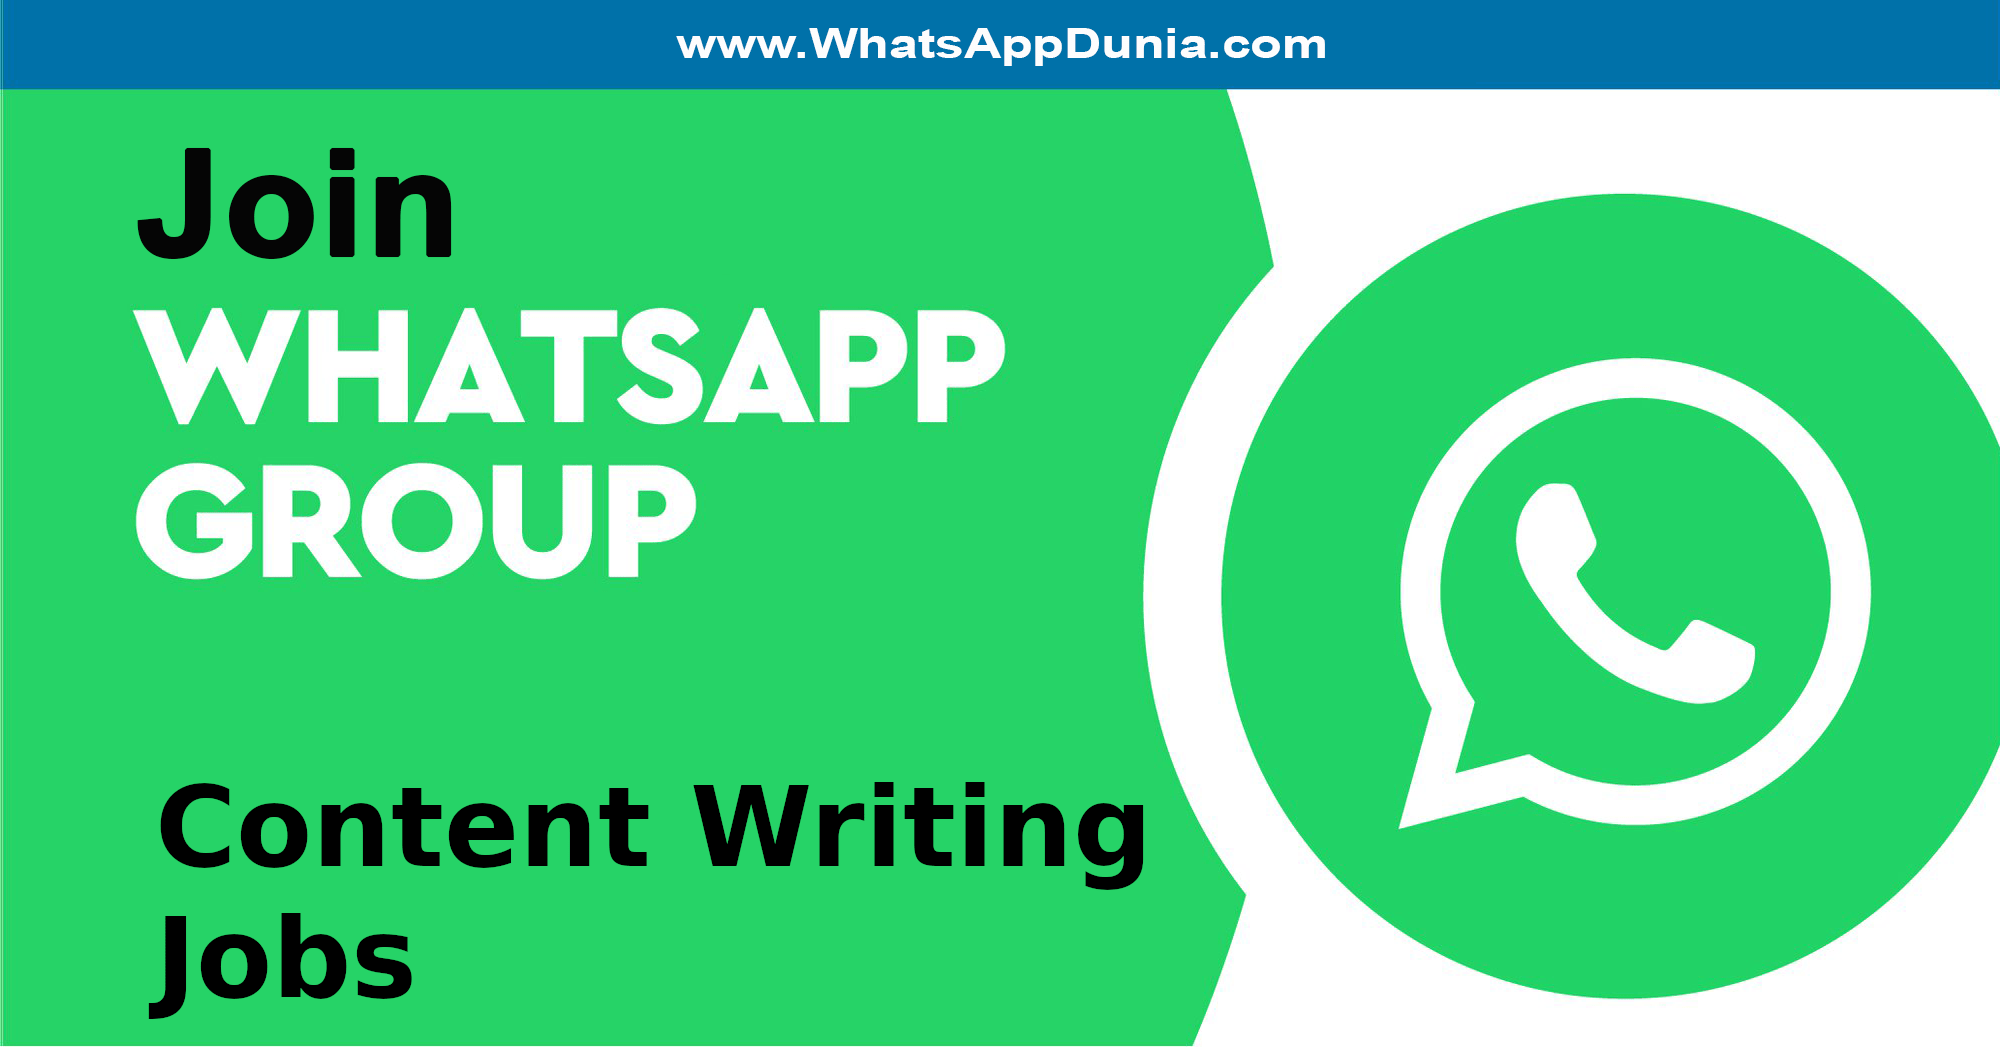 Content Writing Jobs WhatsApp Group Links